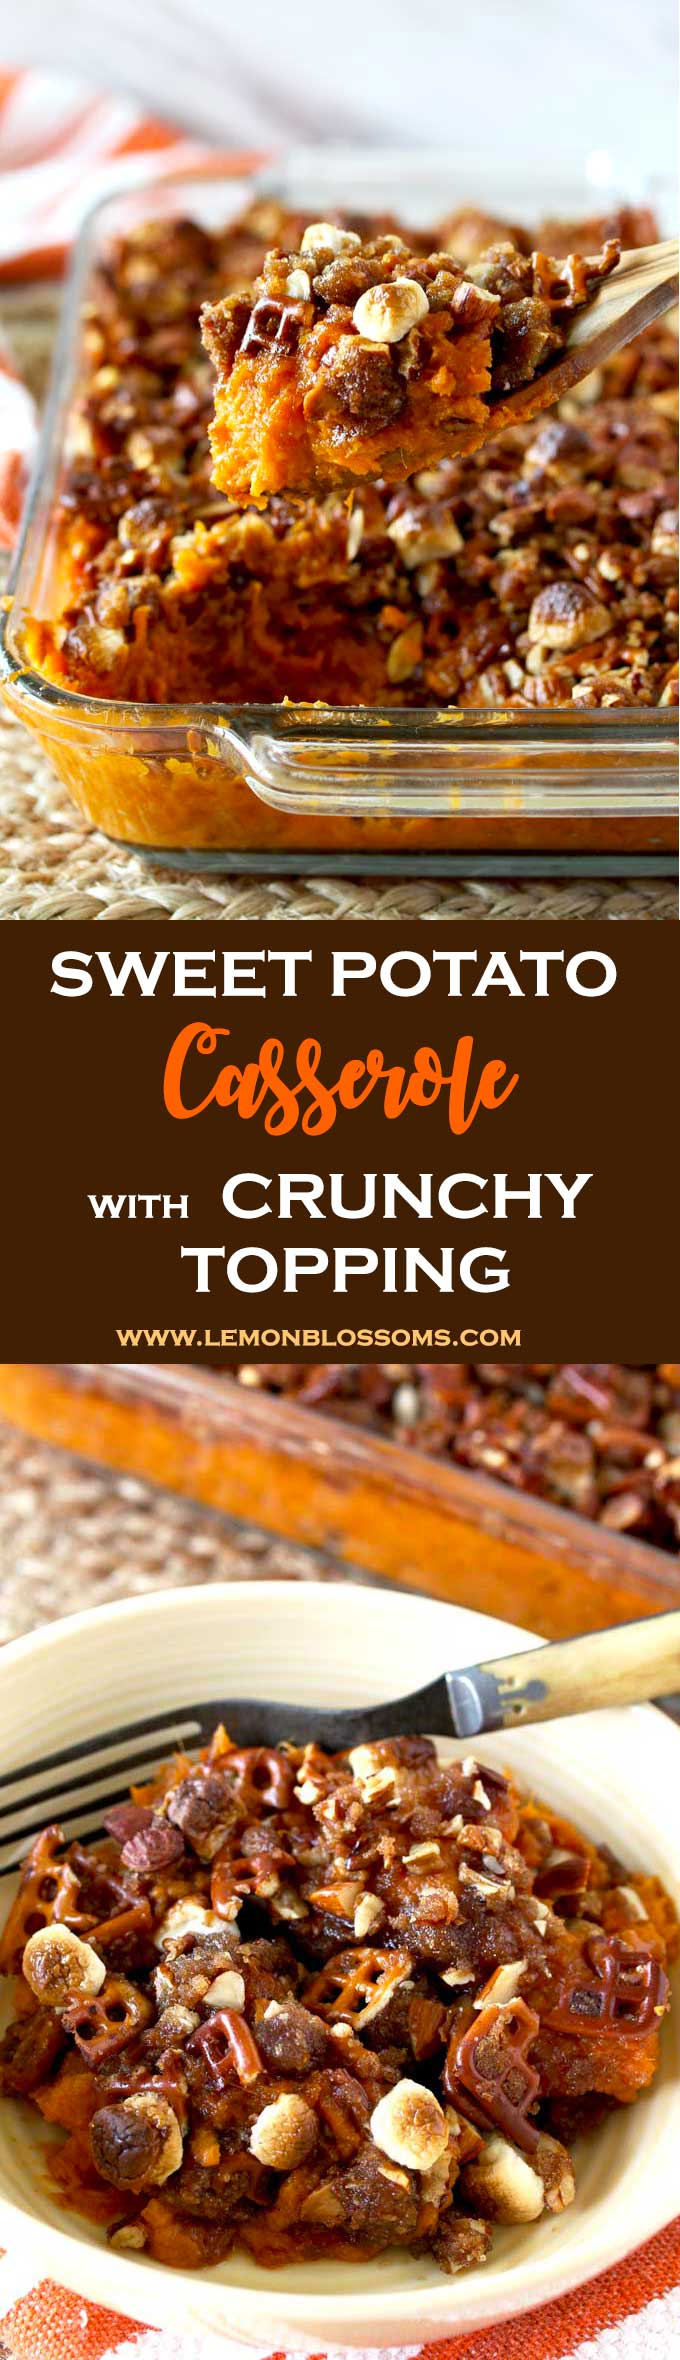 This Sweet Potato Casserole is seasoned with Bourbon Brown Butter and topped with a sweet, salty, nutty and crunchy topping. This casserole is the ultimate side dish for your next get together or holiday party!